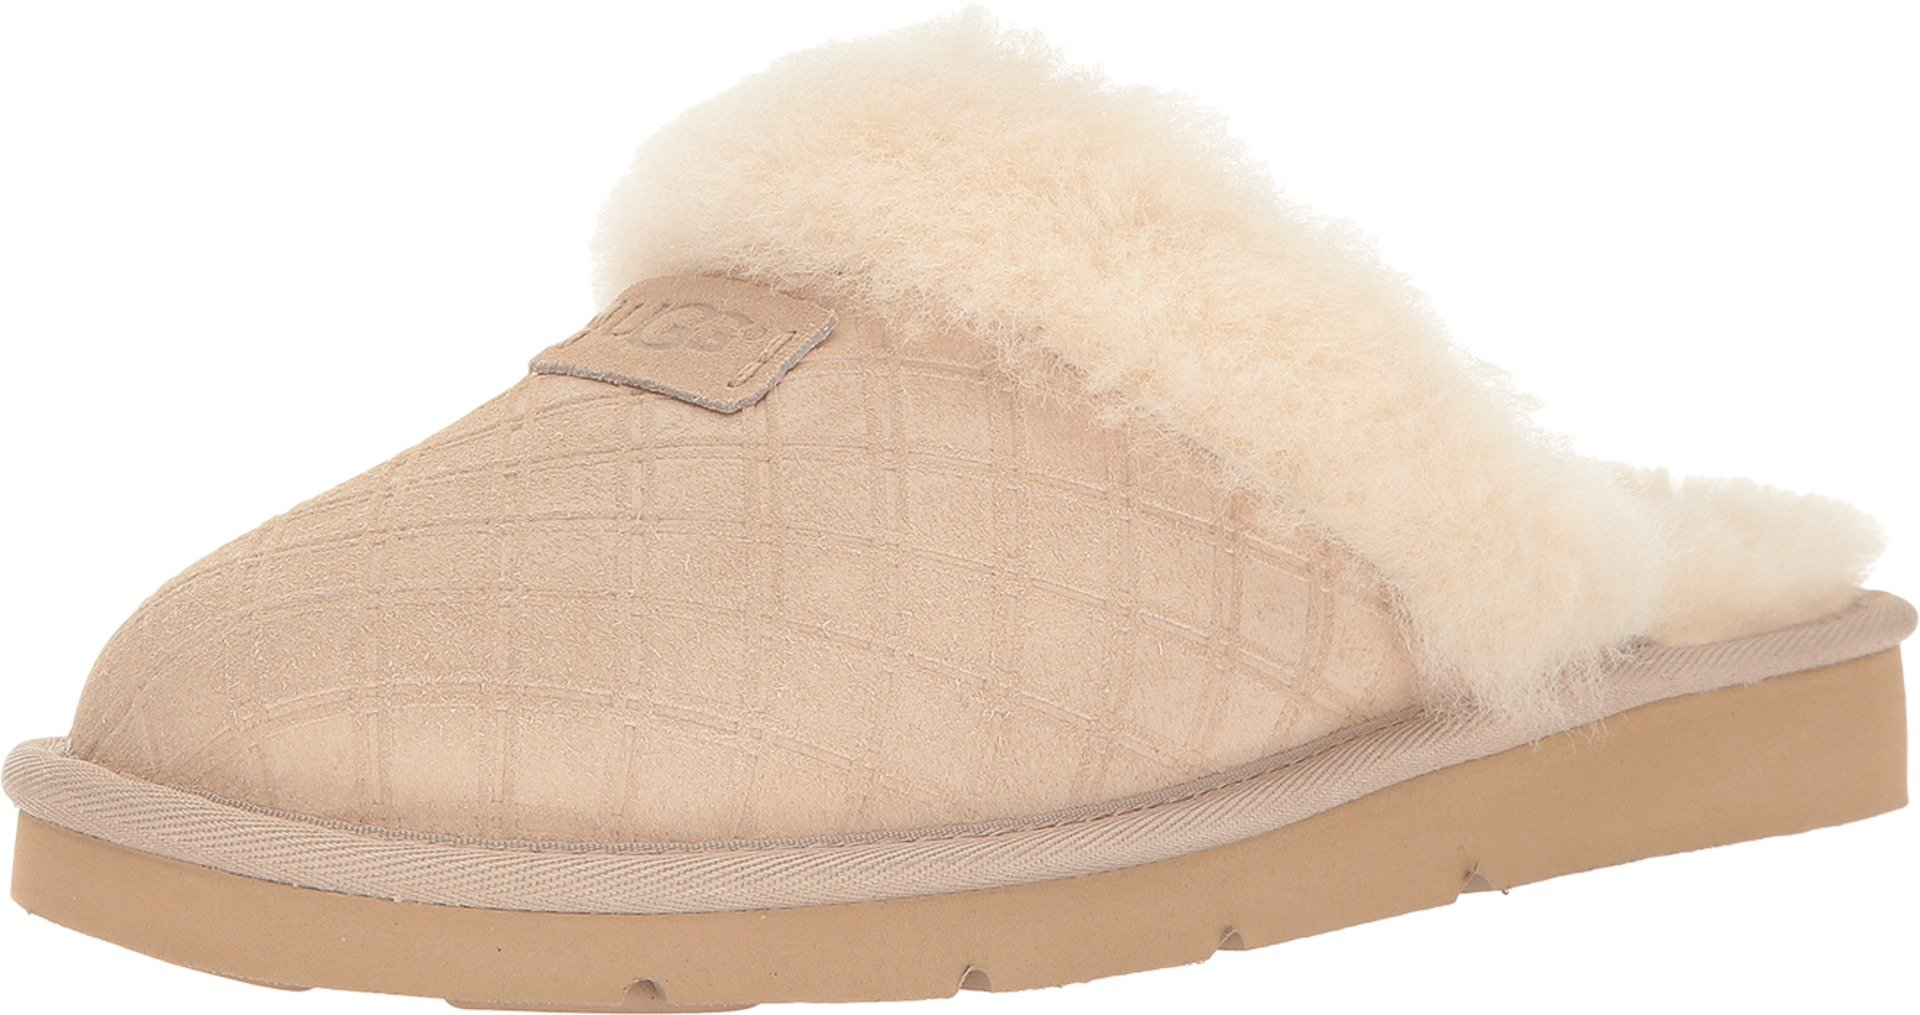 UGG Women's Cozy Double Diamond Holiday Box Pearl Slippers 12 M